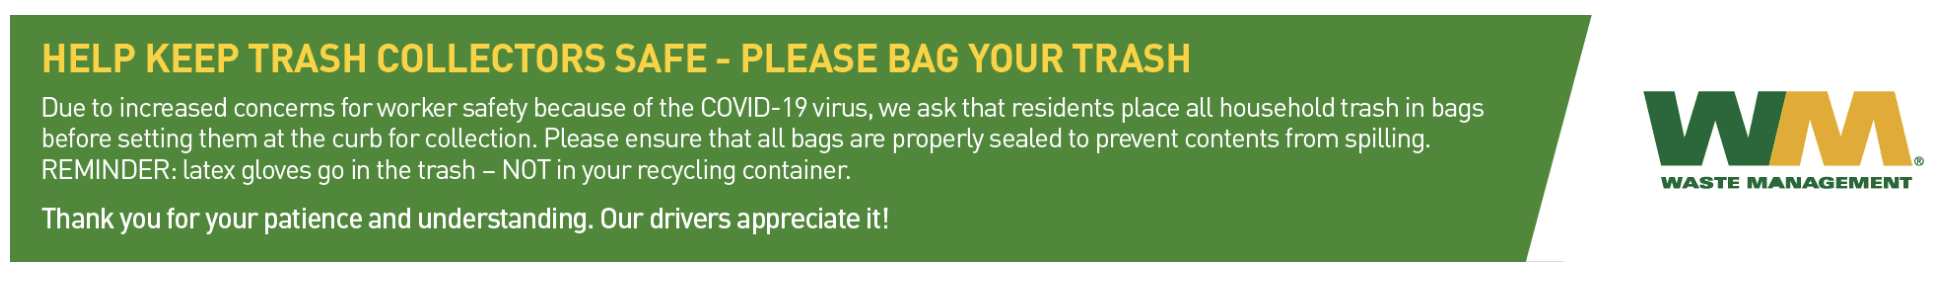 WM Bag Trash Reminder